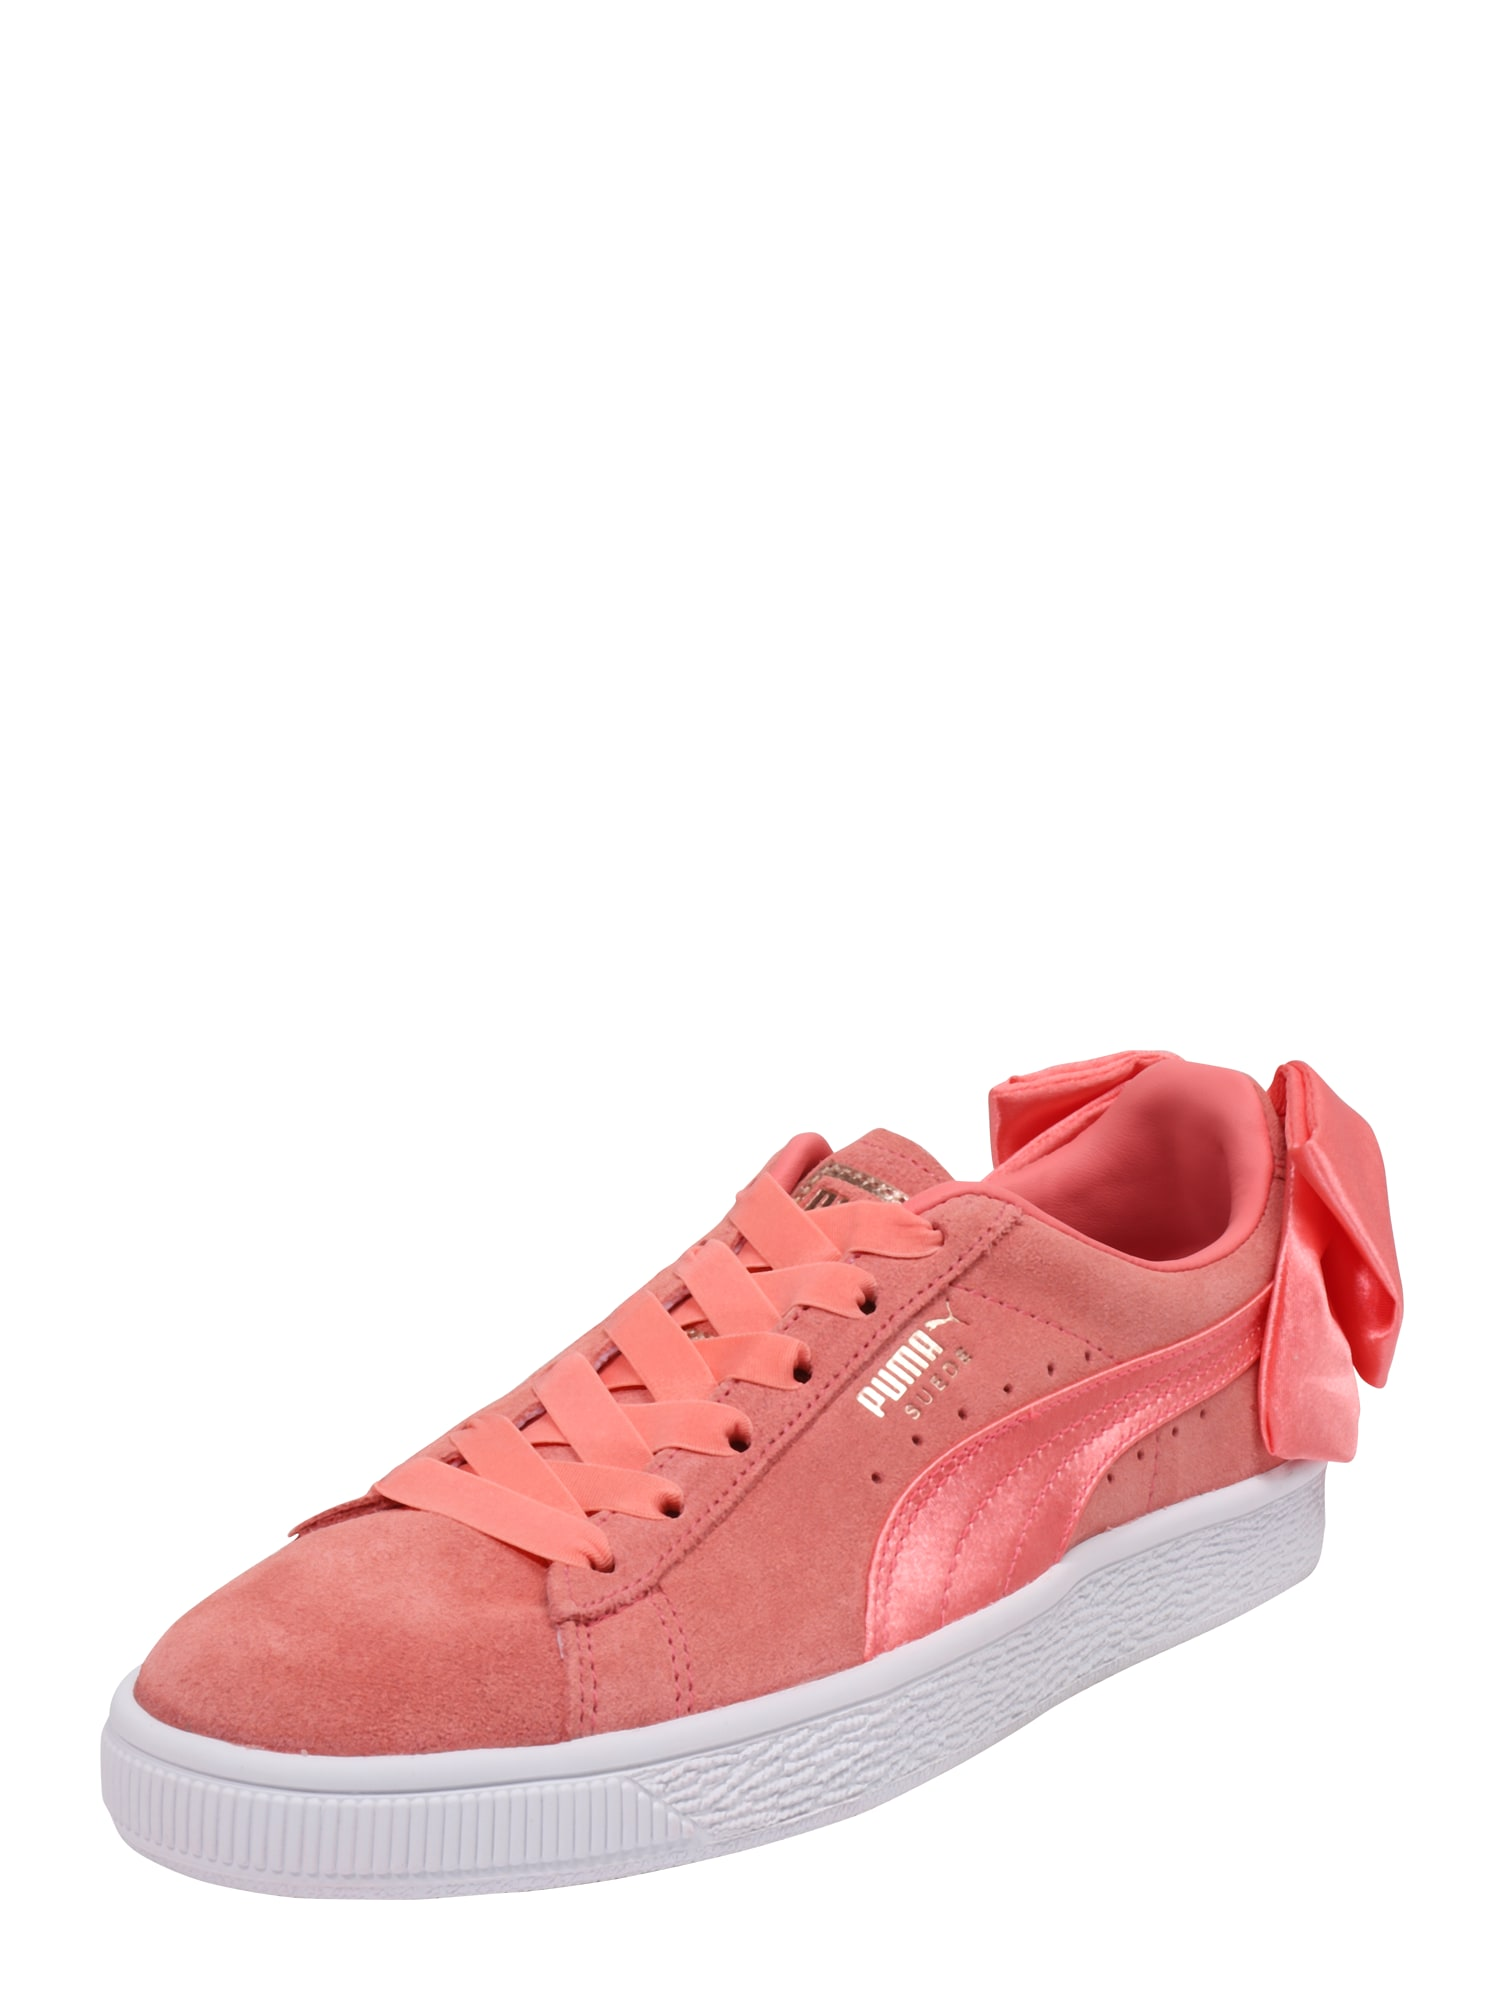 PUMA, Dames Sneakers laag 'Suede Bow', pink / oranjerood